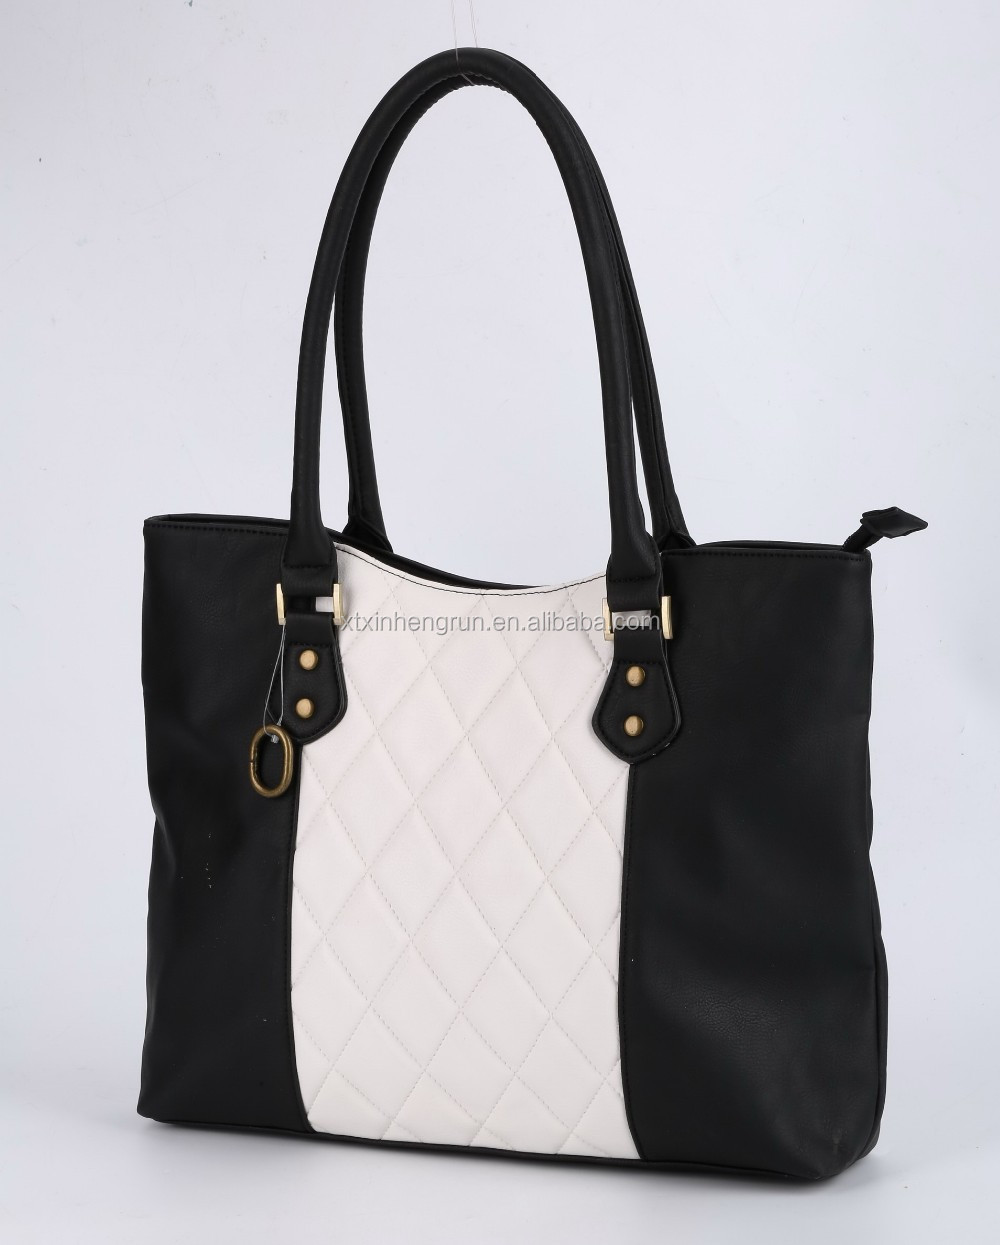 OEM Handbag/ bag for Woman with Assorted Colors